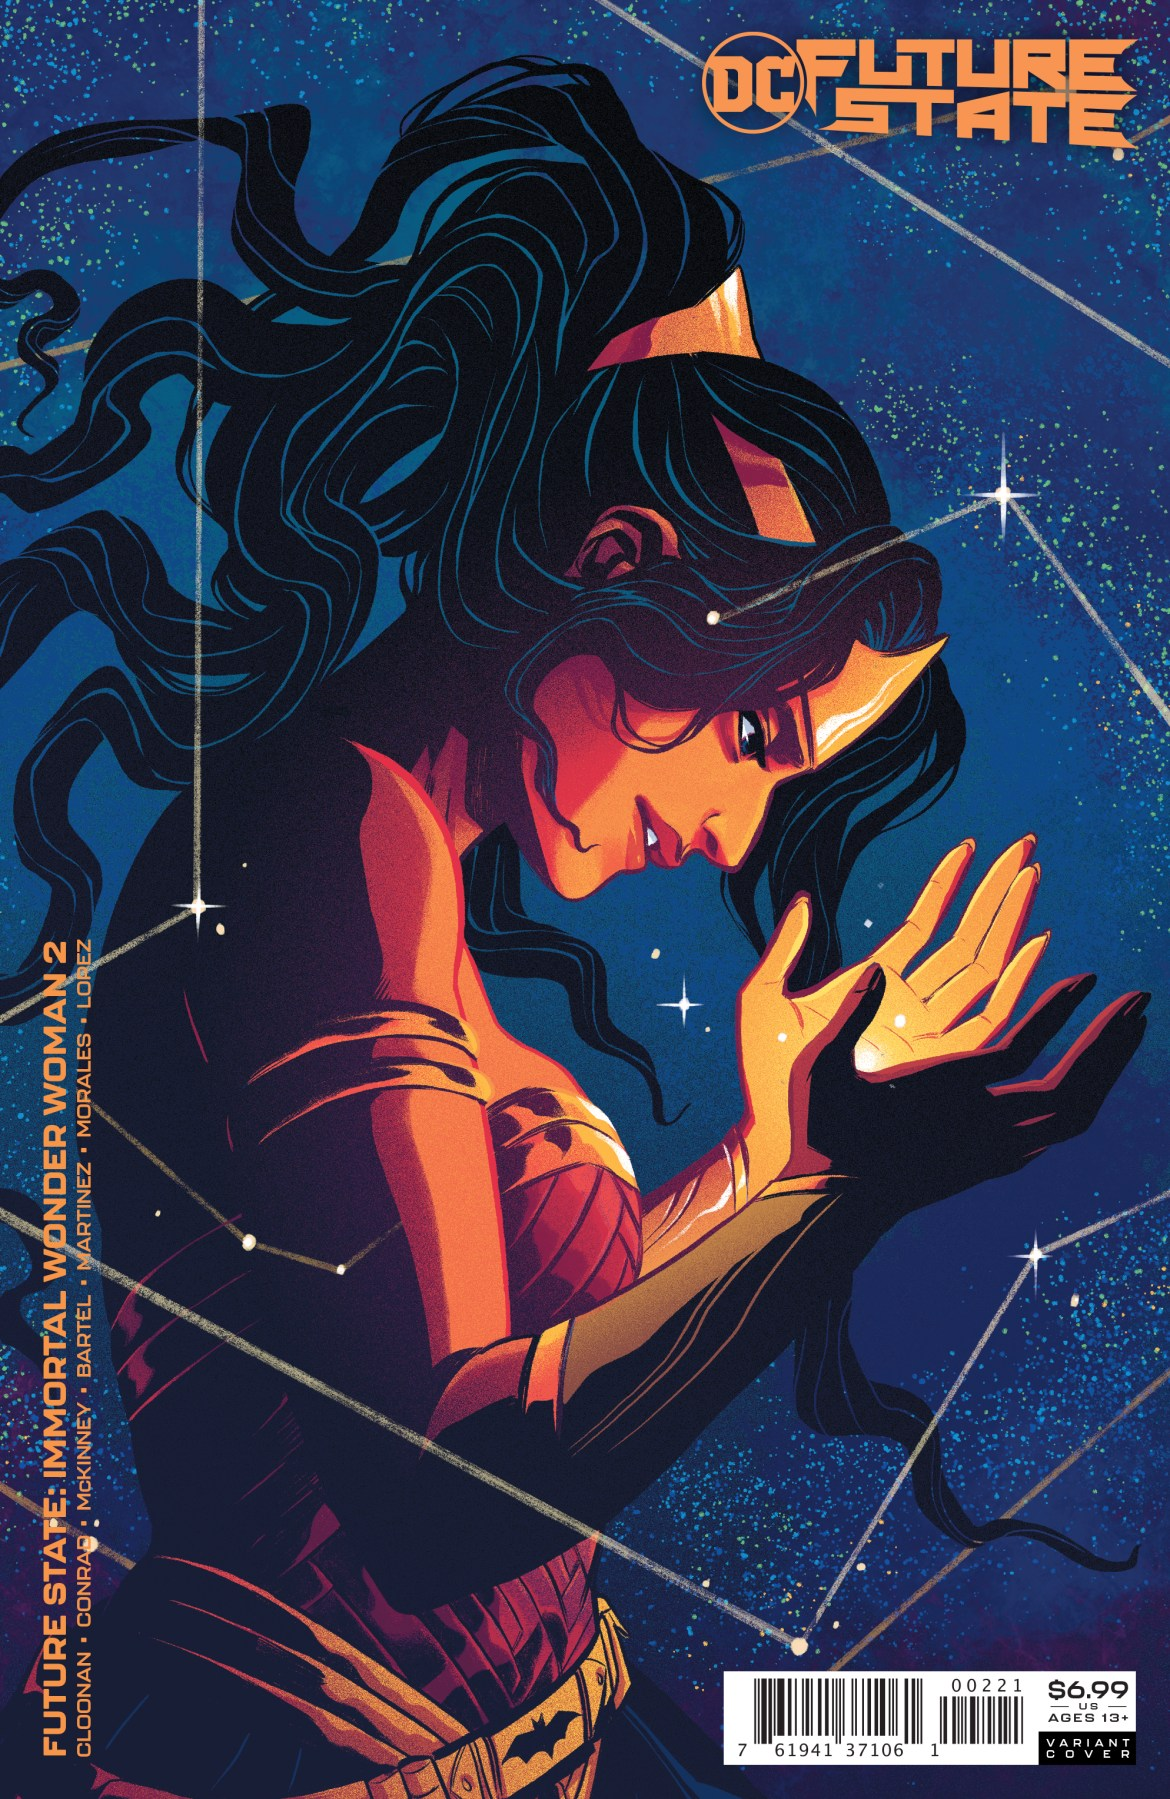 1220DC024 ComicList: New Comic Book Releases List for 02/17/2021